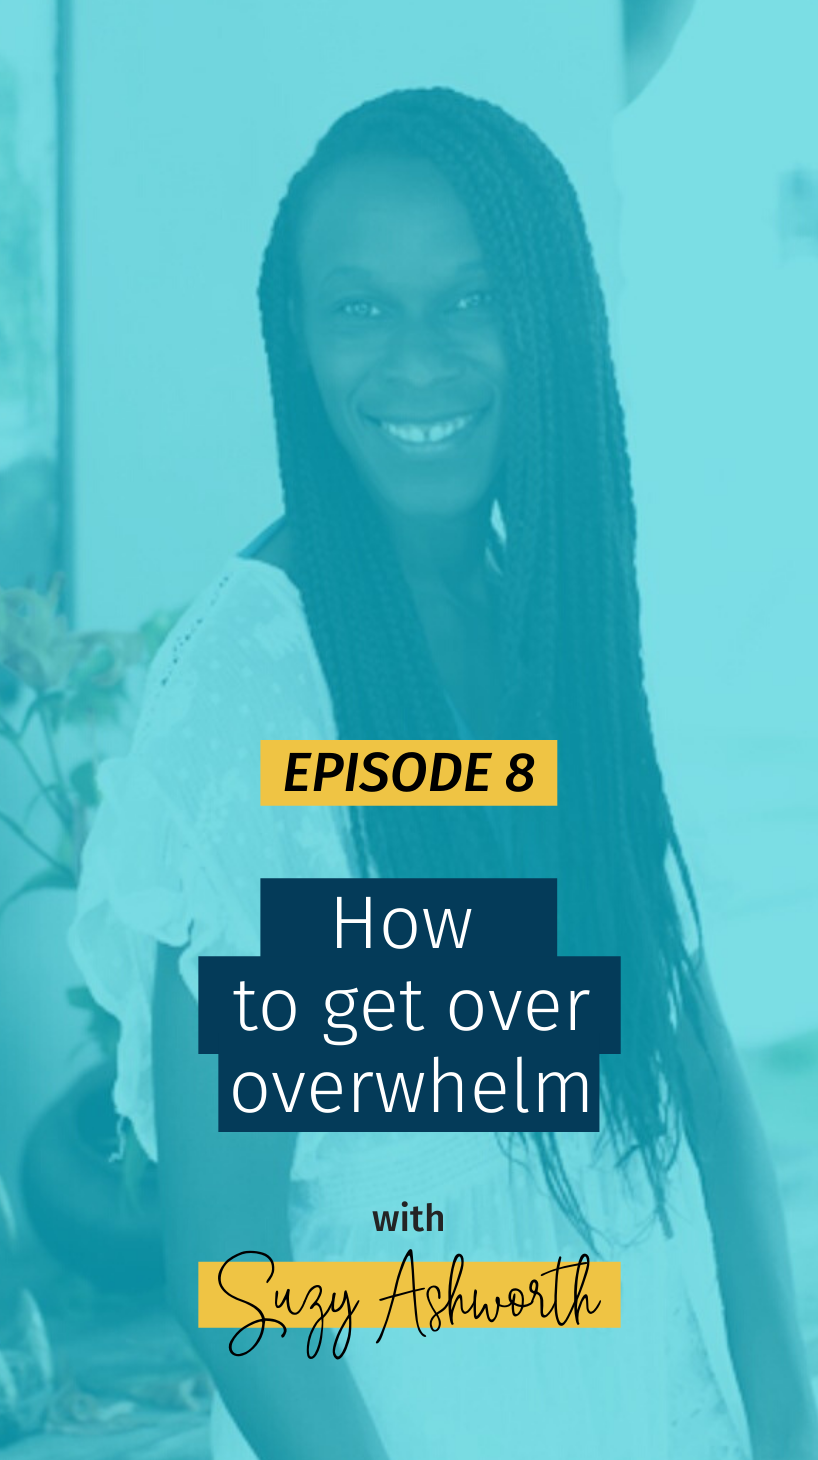 008 How to get over overwhelm